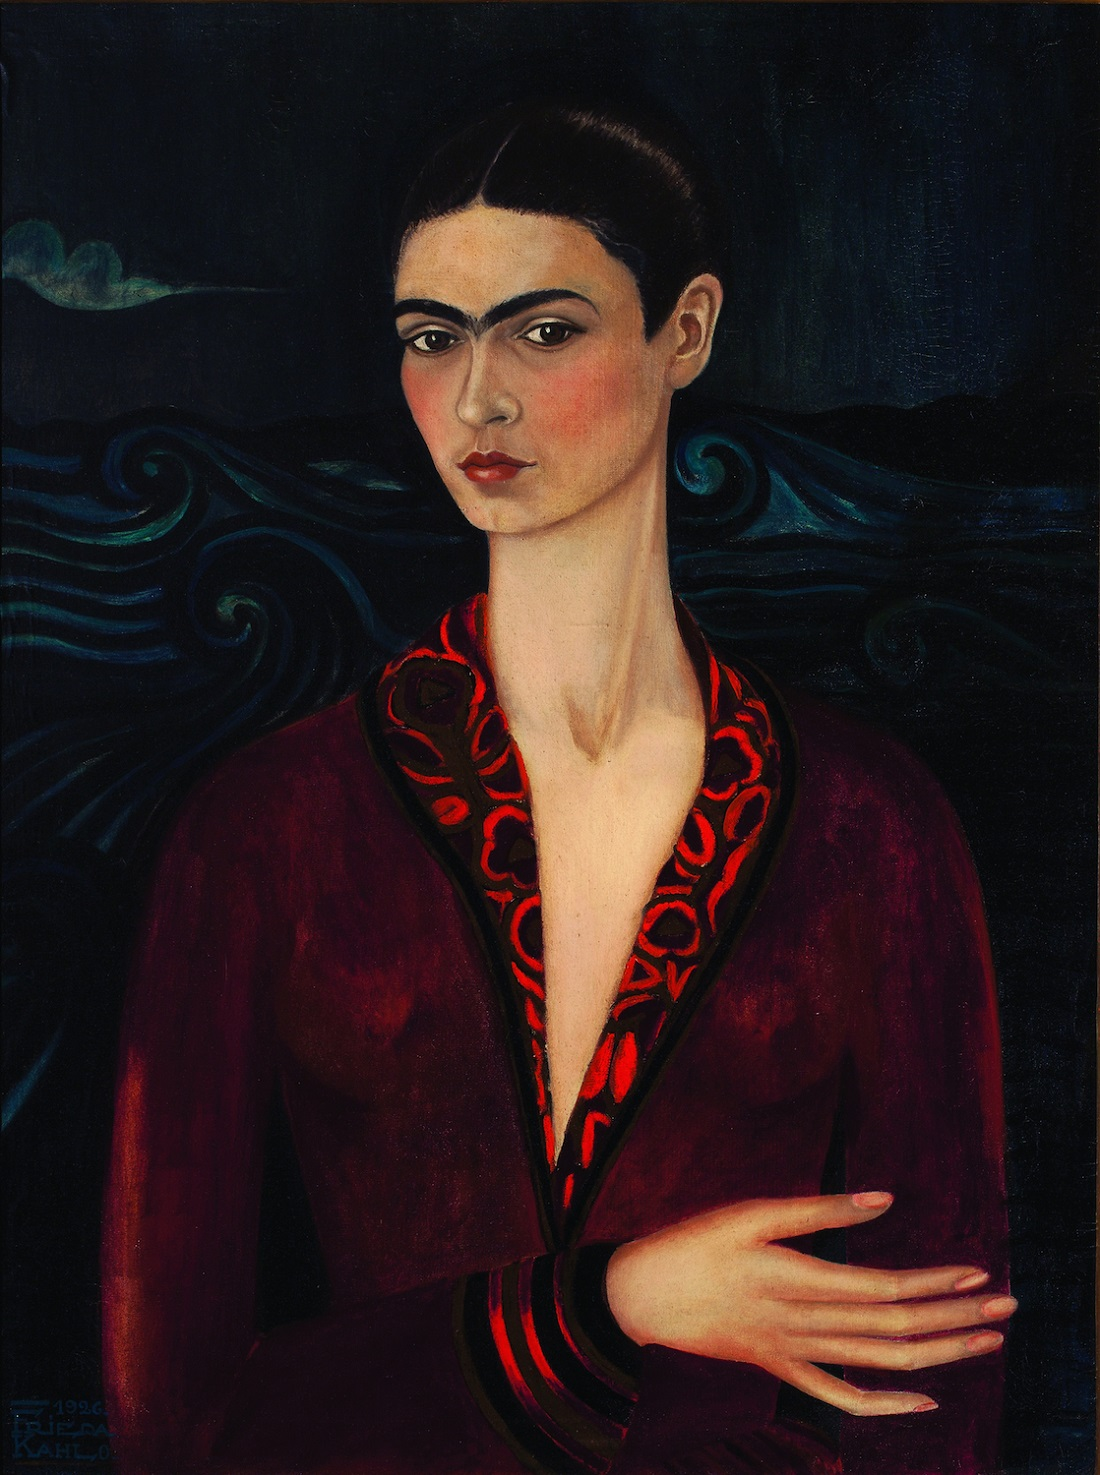 Frida Kahlo, Self-portrait with red velvet dress, 1926